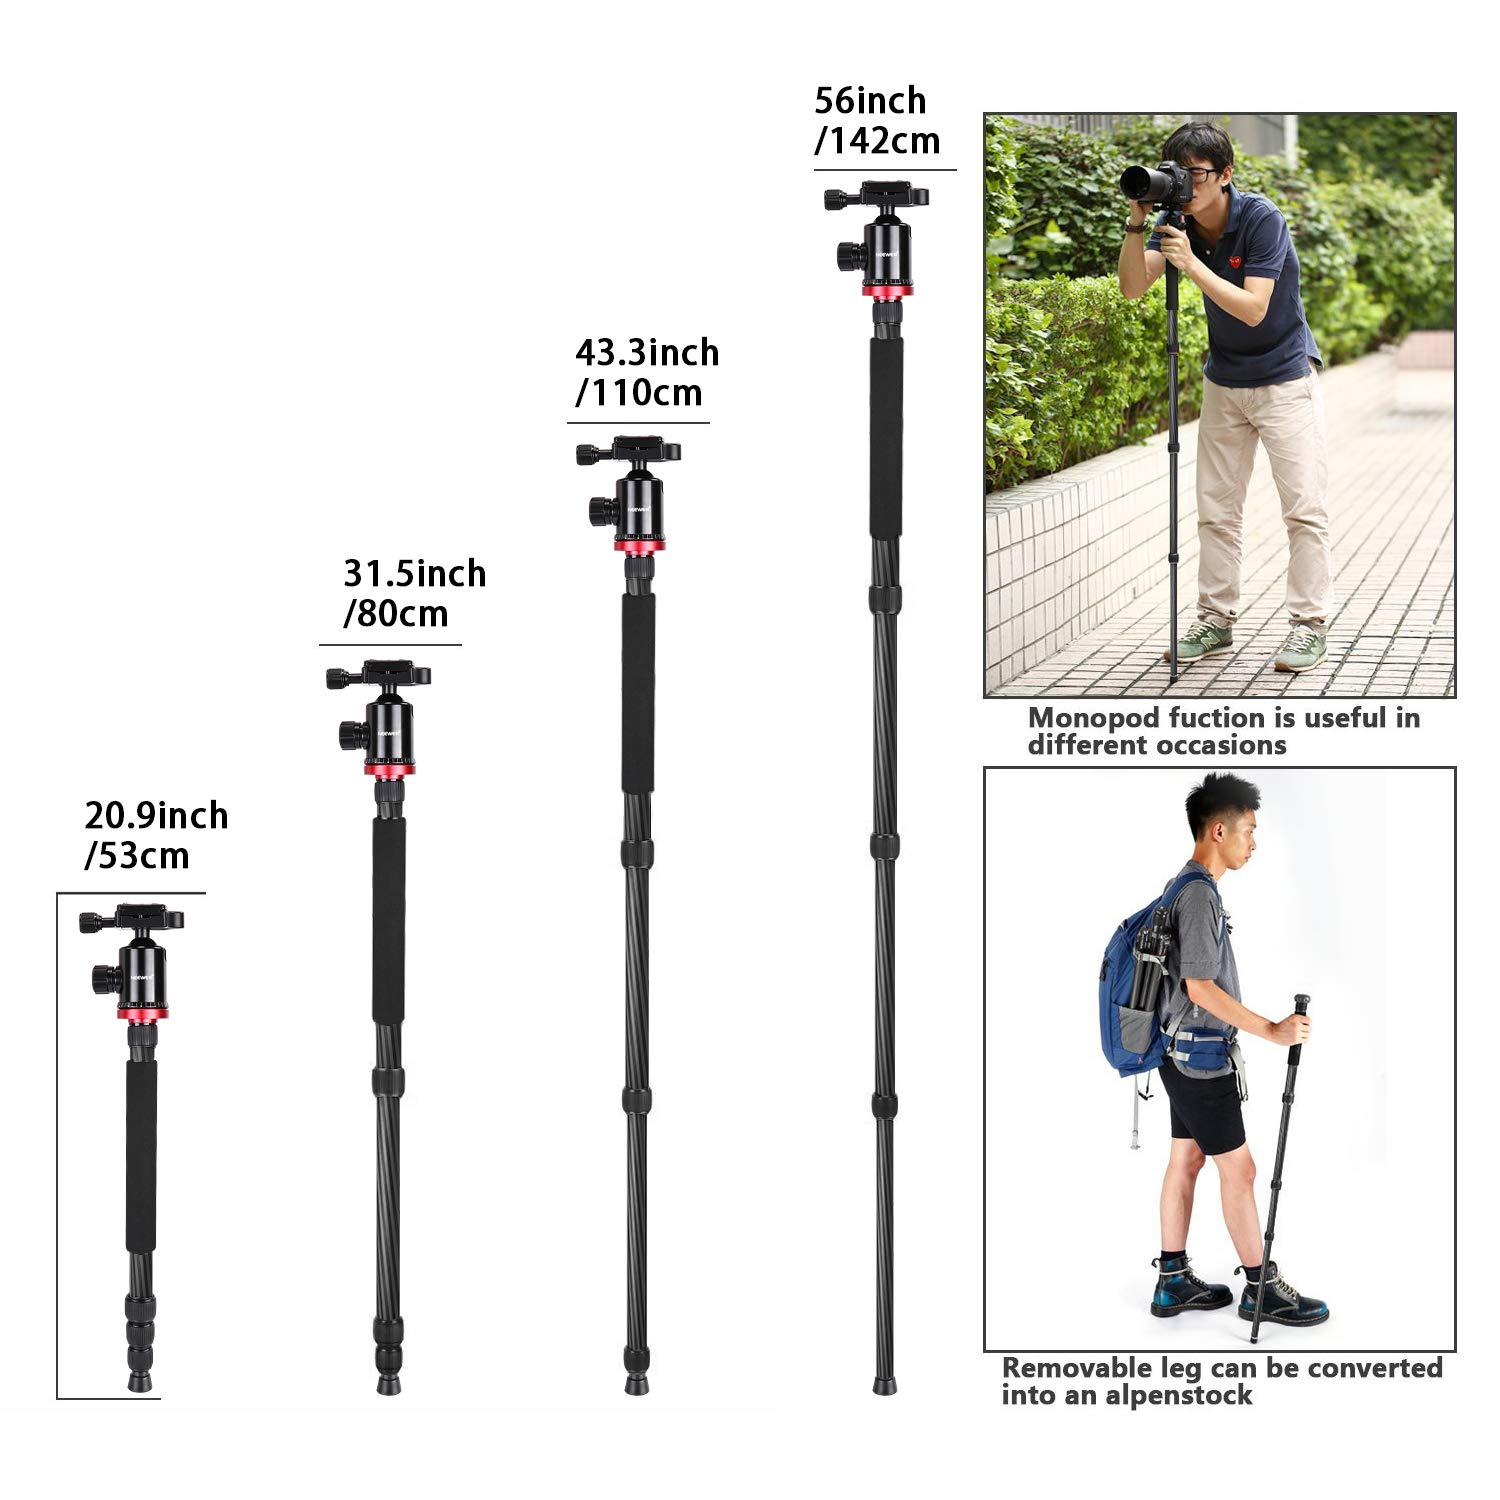 Neewer Camera Tripod Monopod Carbon Fiber with Rotatable Center Column - Portable Lightweight, 75 inches/191 Centimeters, 360 Degree Ball Head for DSLR Camera Camcorder up to 26.5 pounds by Neewer (Image #6)